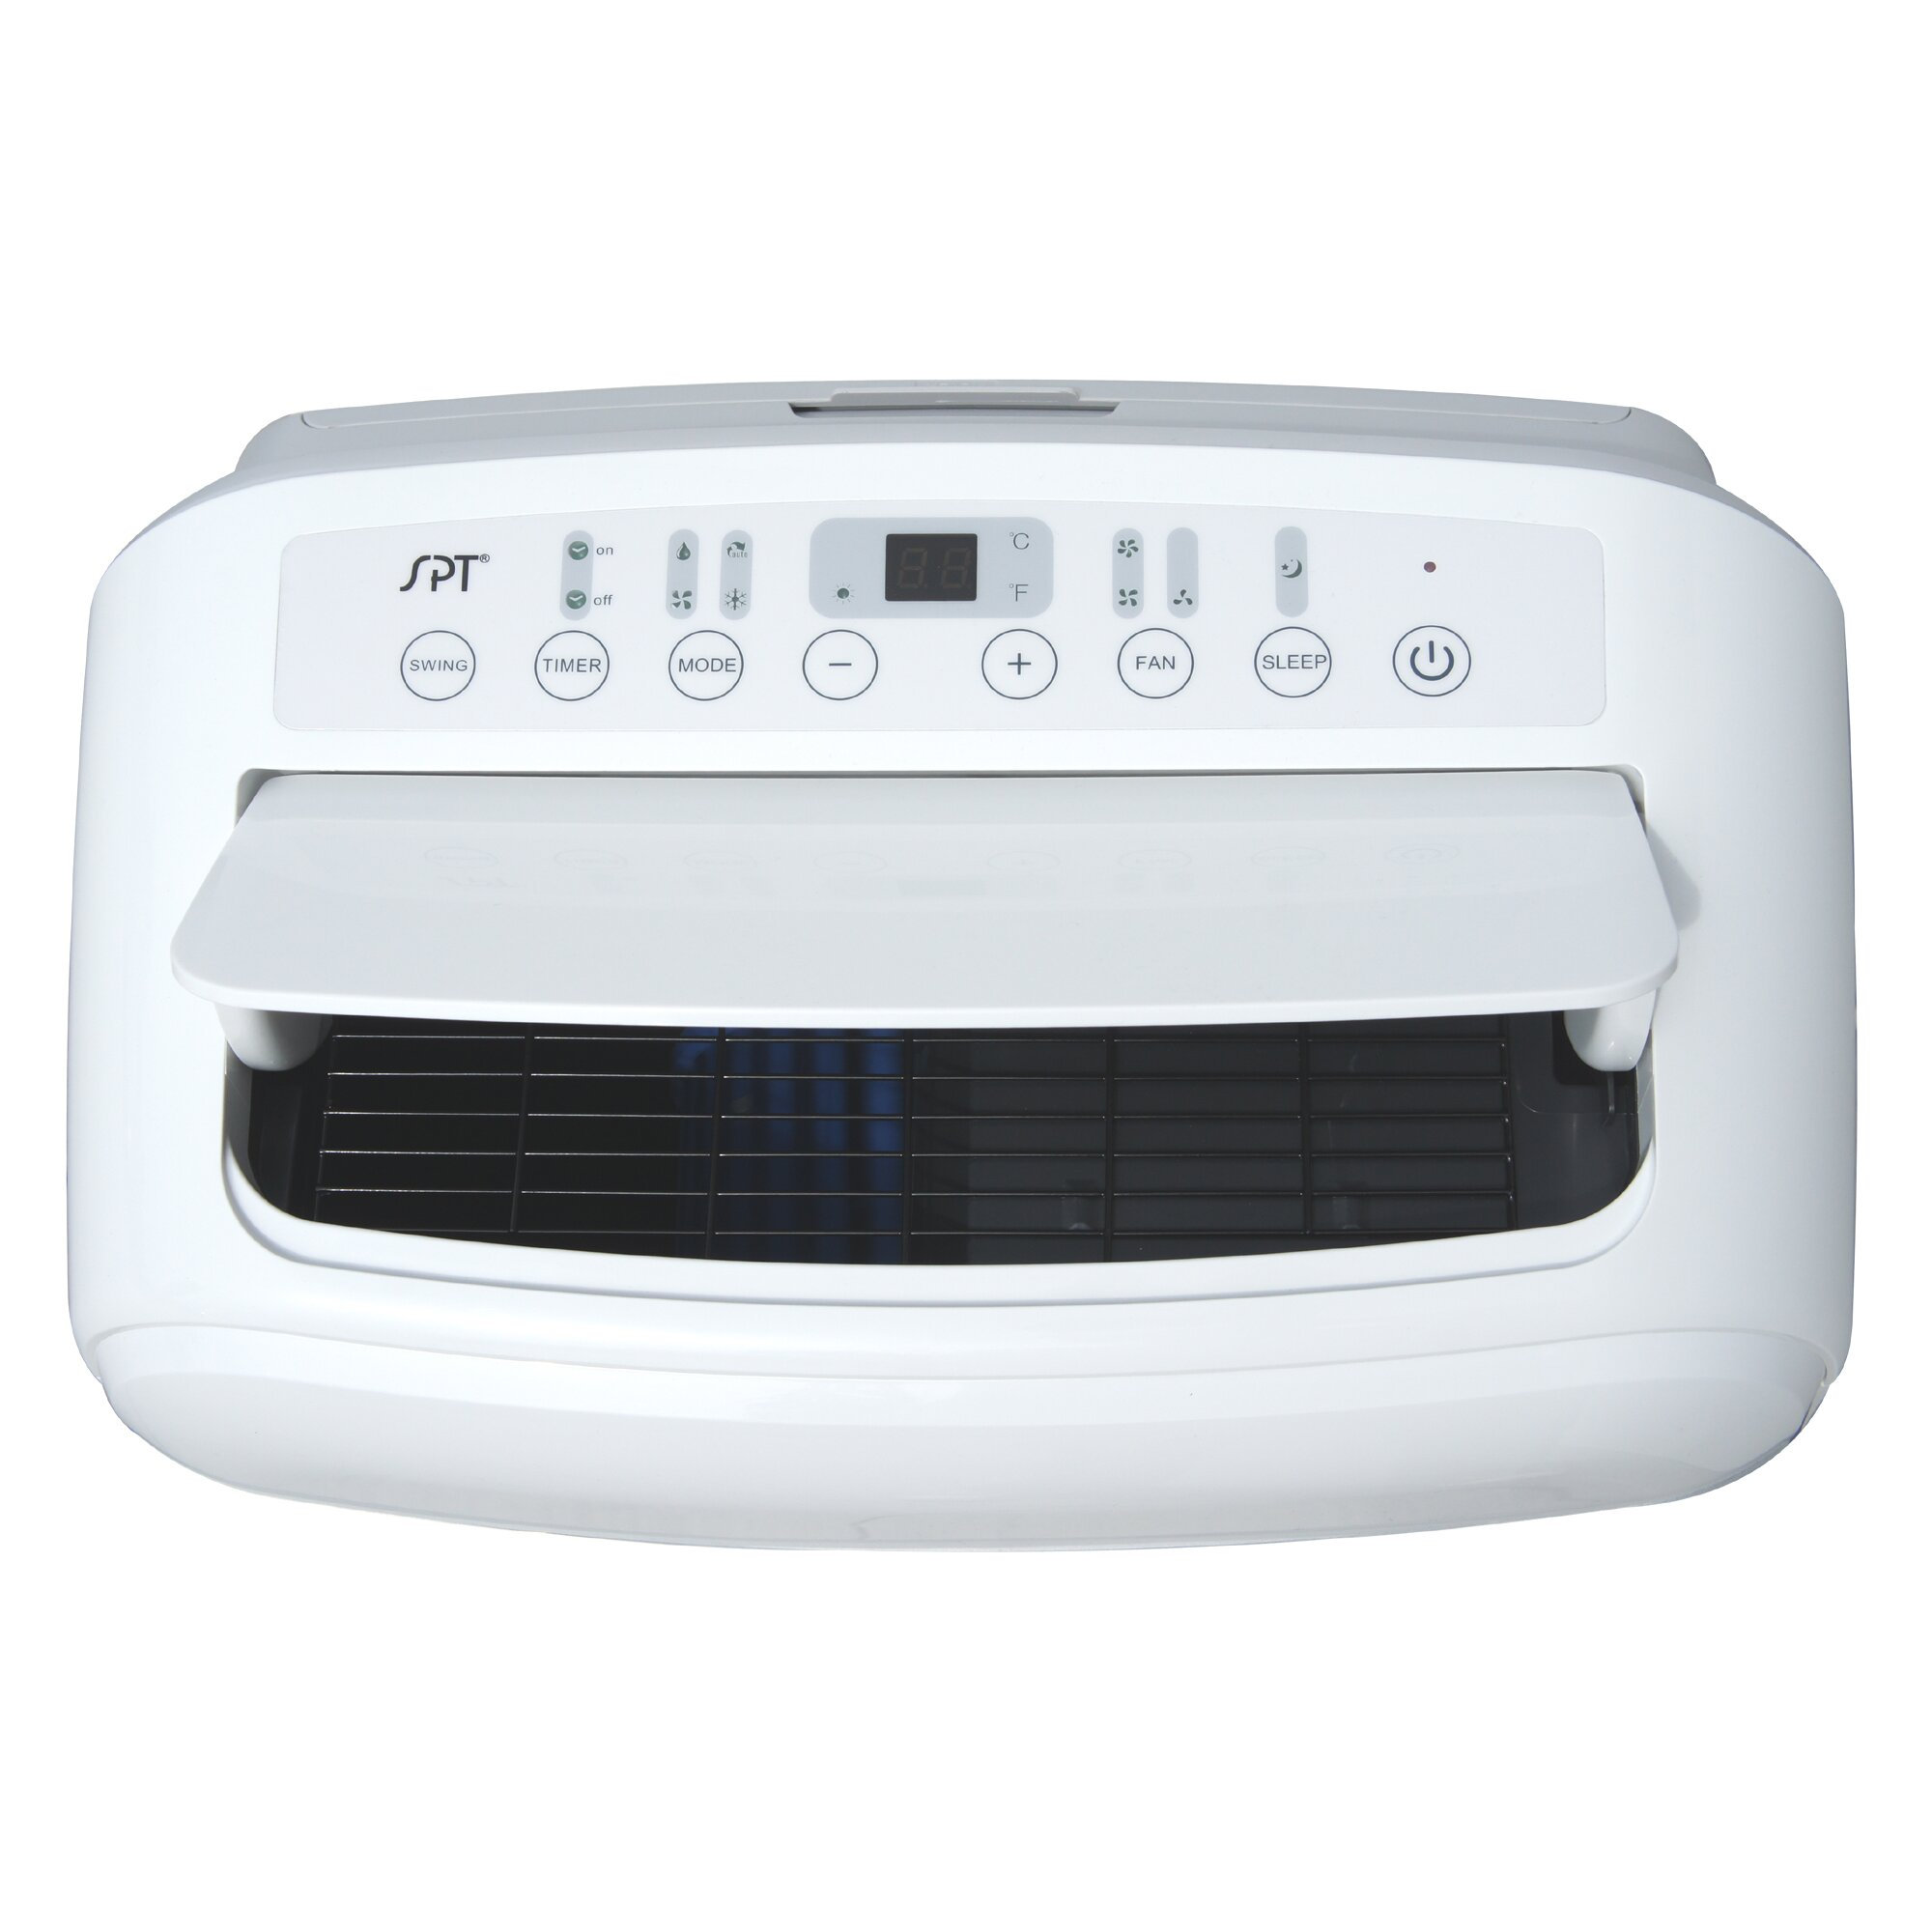 Sunpentown 14 000 BTU Portable Air Conditioner with Heater & Reviews  #333F59